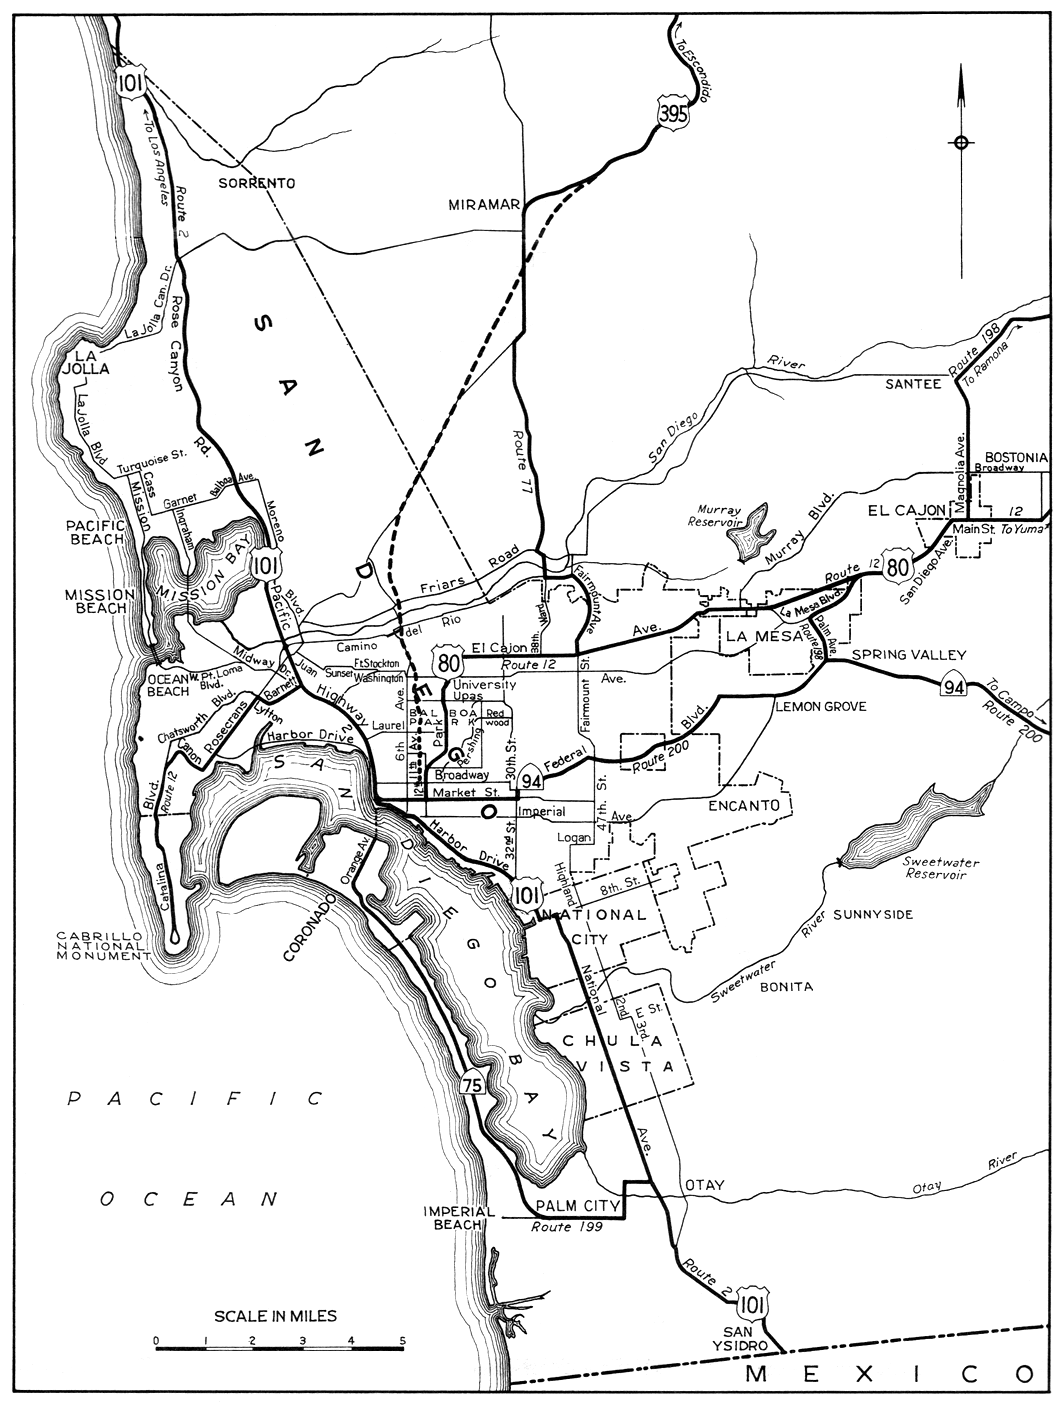 San Diego To Poway - Us 395 map